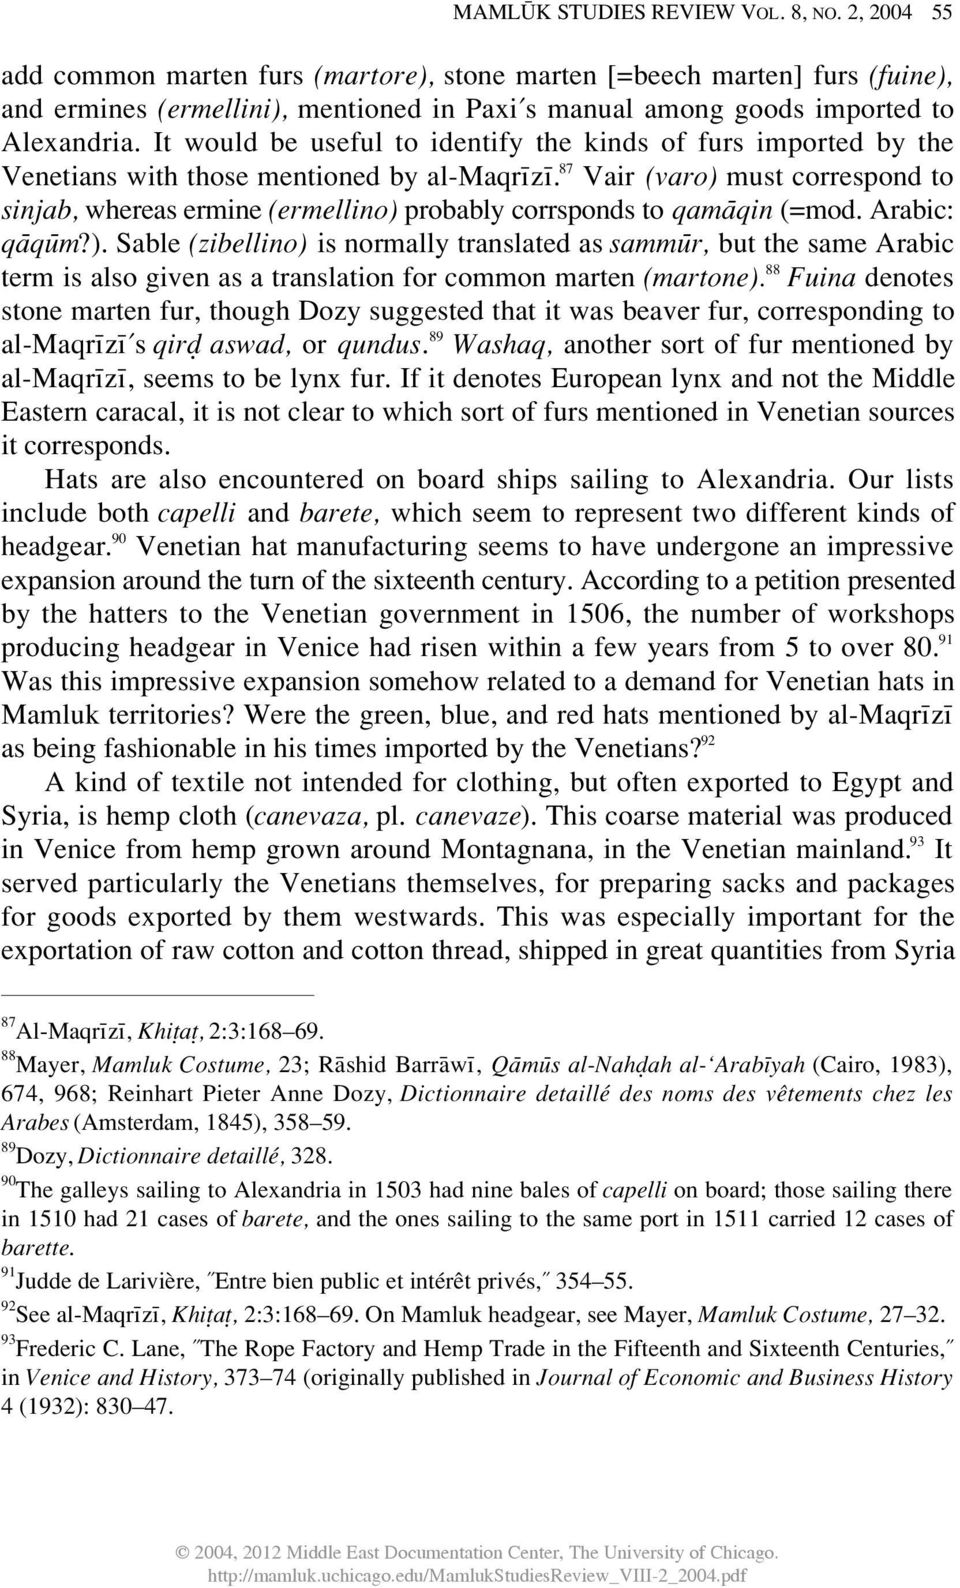 It would be useful to identify the kinds of furs imported by the Venetians with those mentioned by al-maqr z.